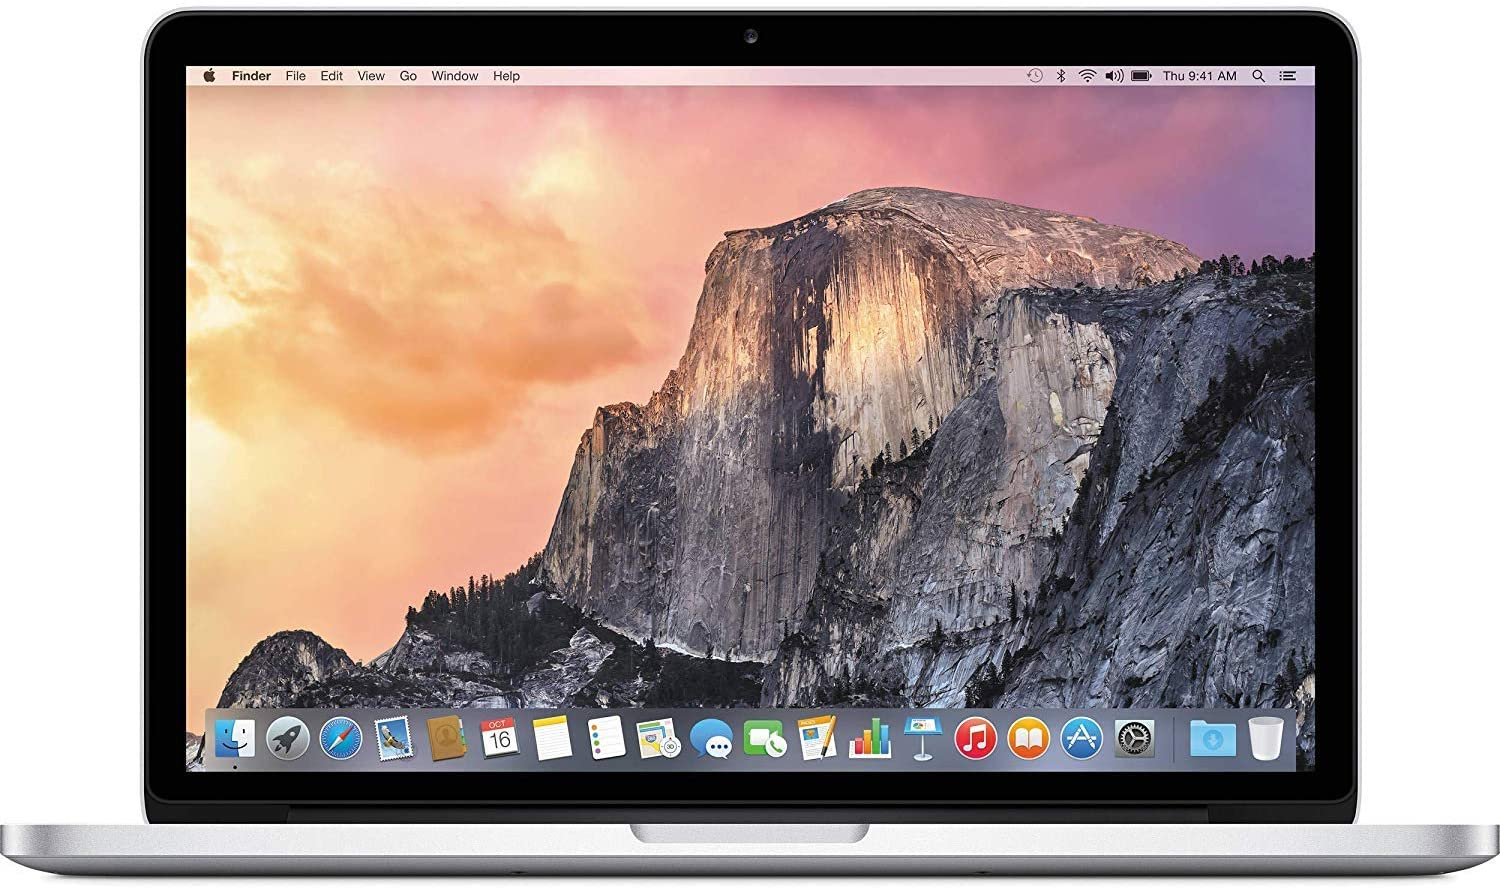 Apple MacBook Pro MLH12LL/A 13-inch Laptop with Touch Bar, 2.9GHz Dual-core Intel Core i5, 16GB Memory, 512GB, Retina Display, Silver (Renewed)